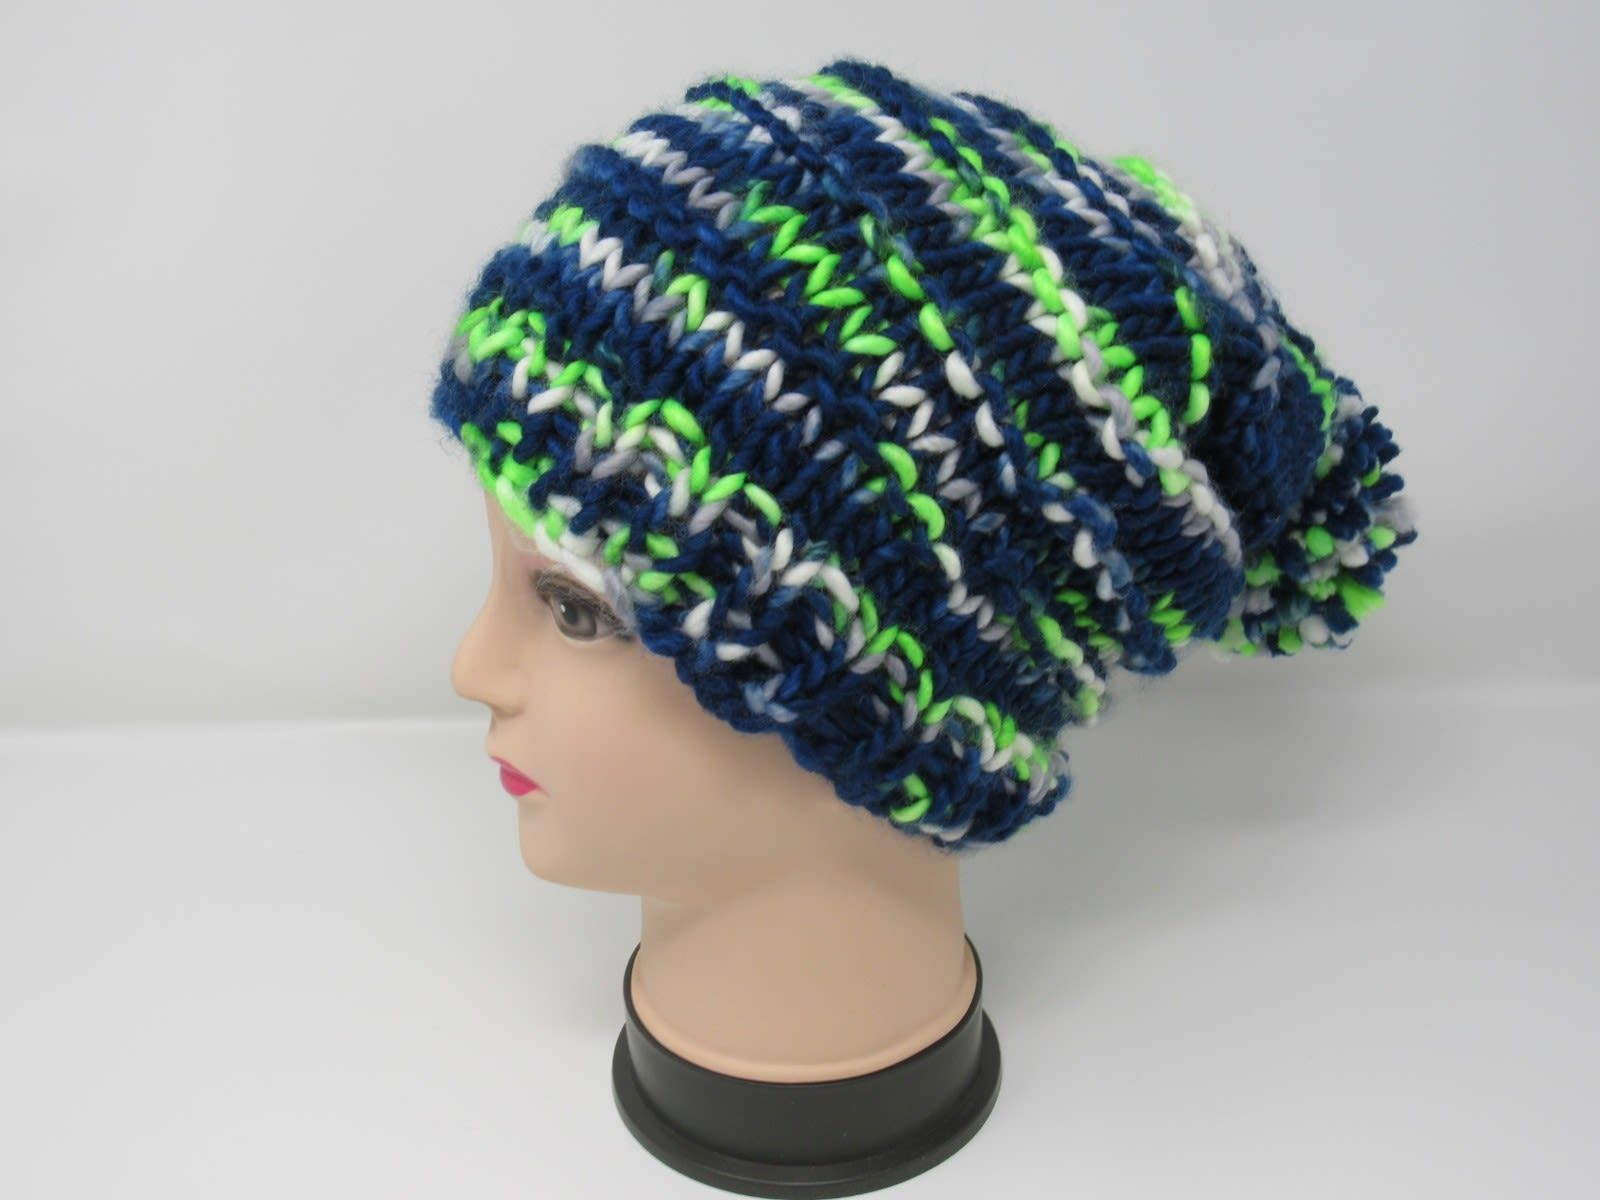 Handcrafted Knitted Hat Beanie Pom Pom 100% Merino Wool Female Adult Striped